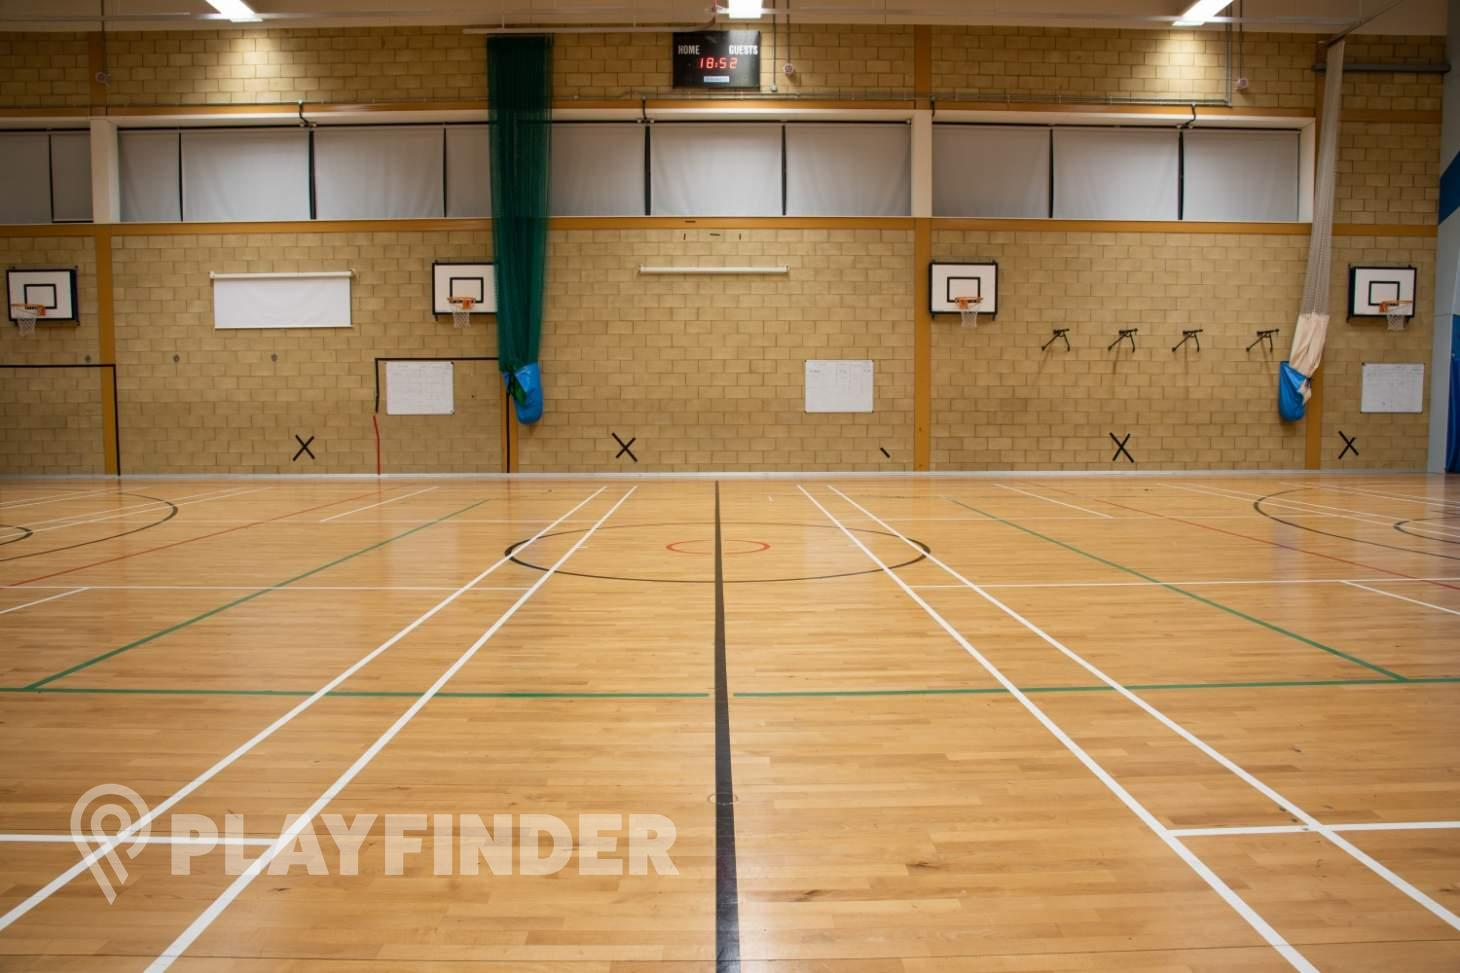 The Petchey Academy Sports Club Indoor netball court